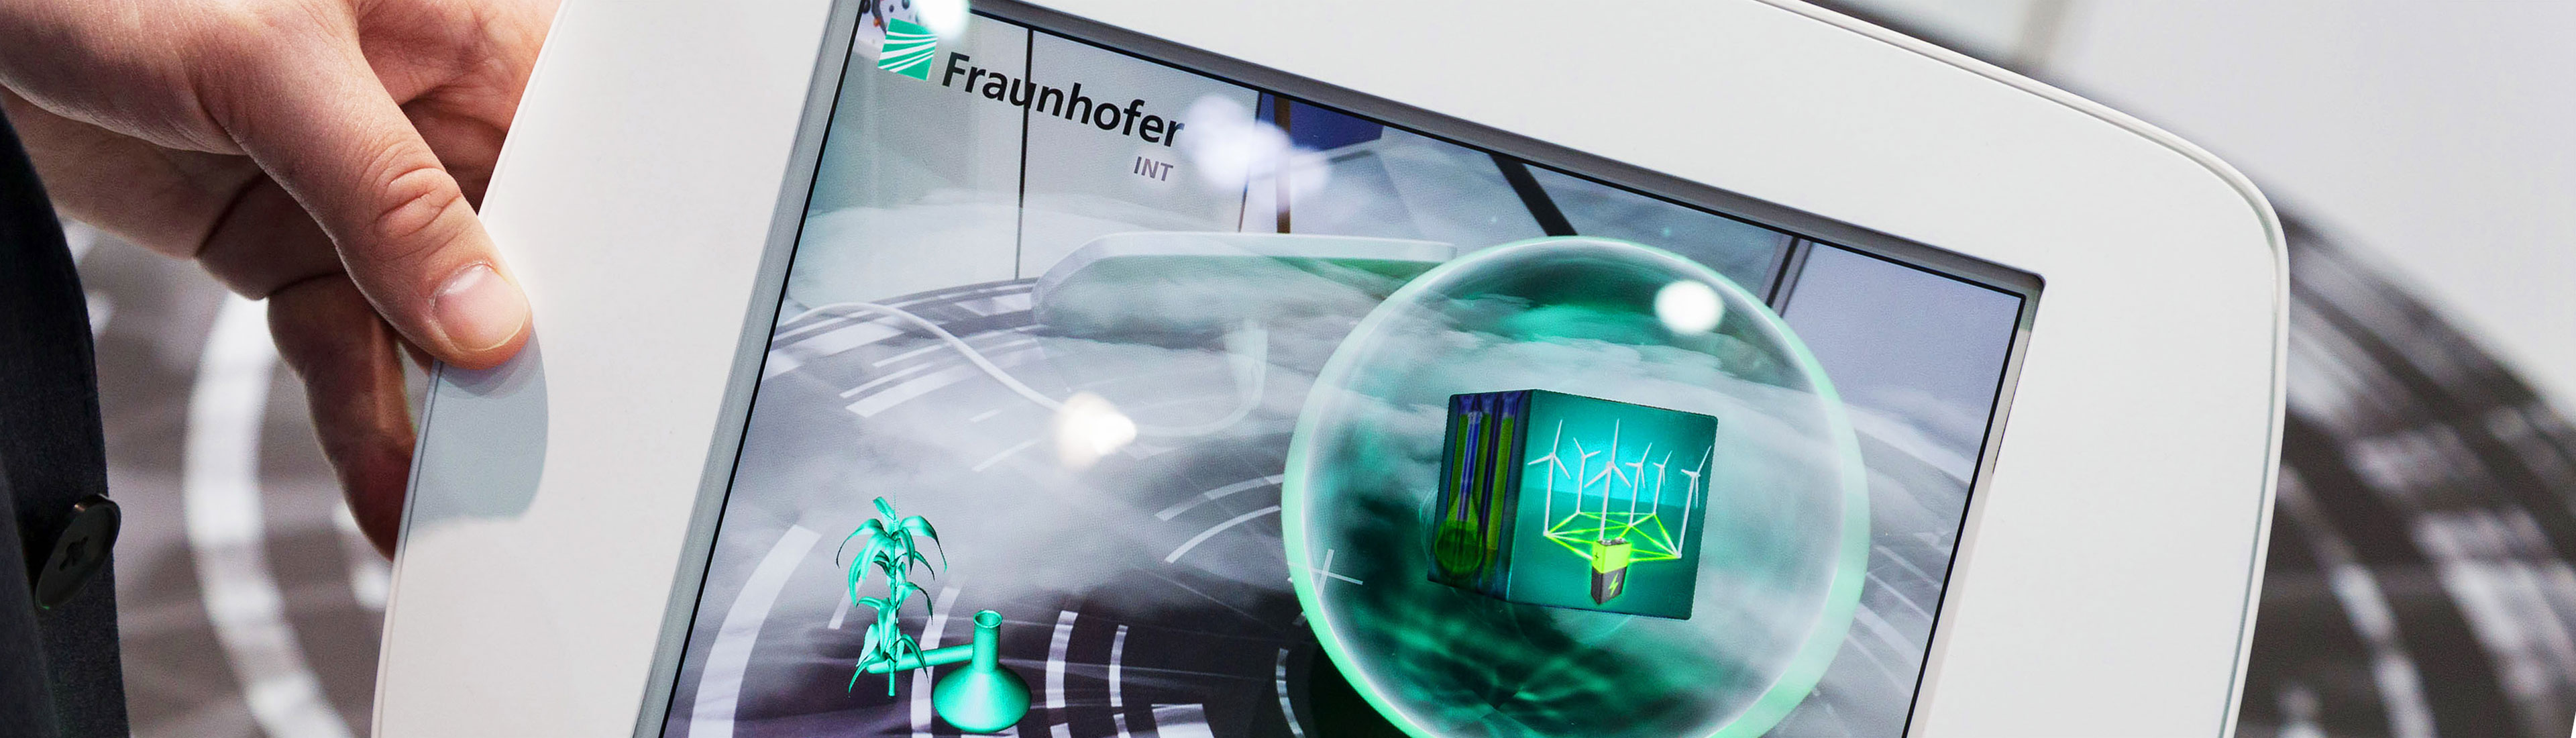 Fraunhofer Institut – Augmented Reality Exponat